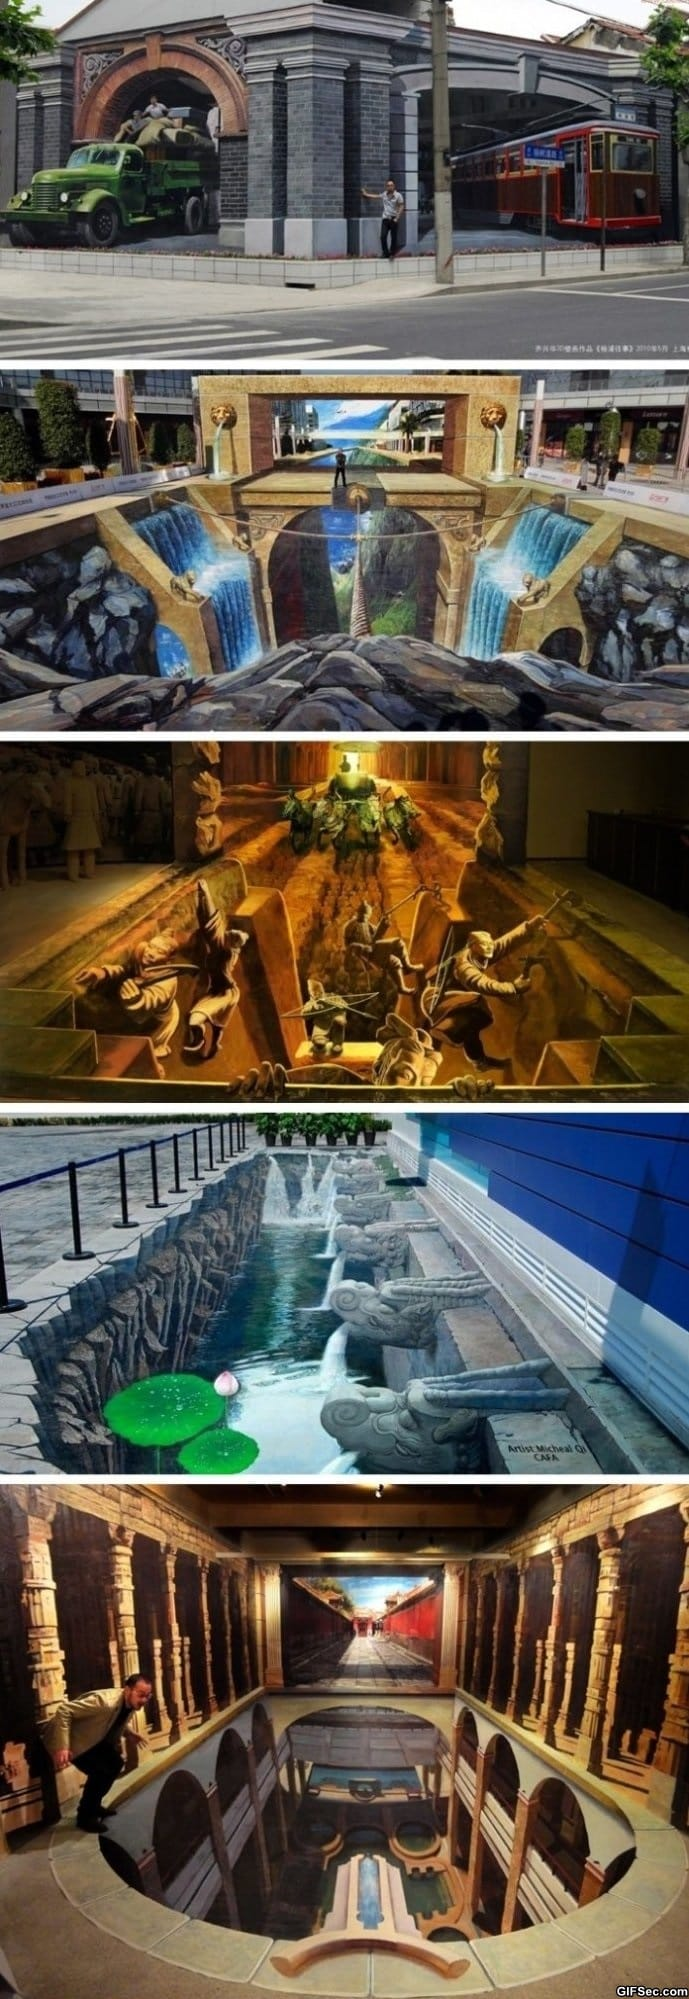 super-awesome-street-art